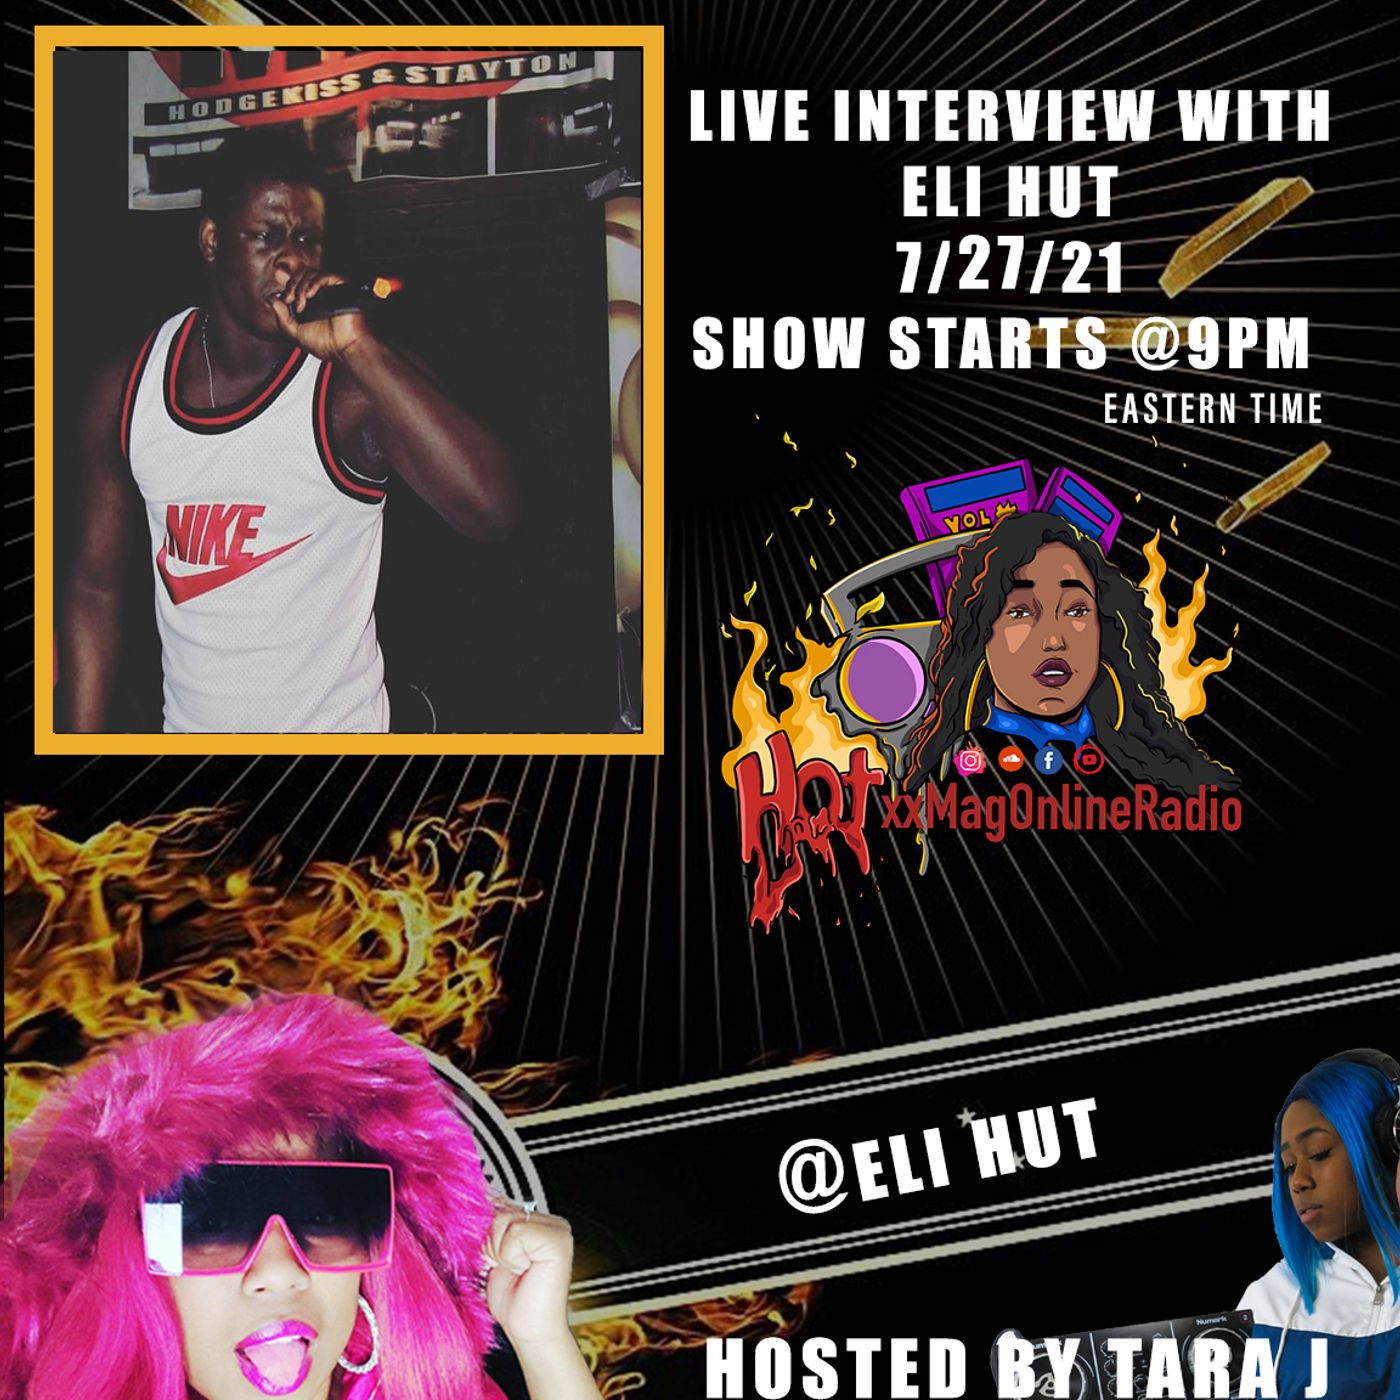 HotxxMagOnlineRadio LIVE With Eli Hut | Hosted By Tara J